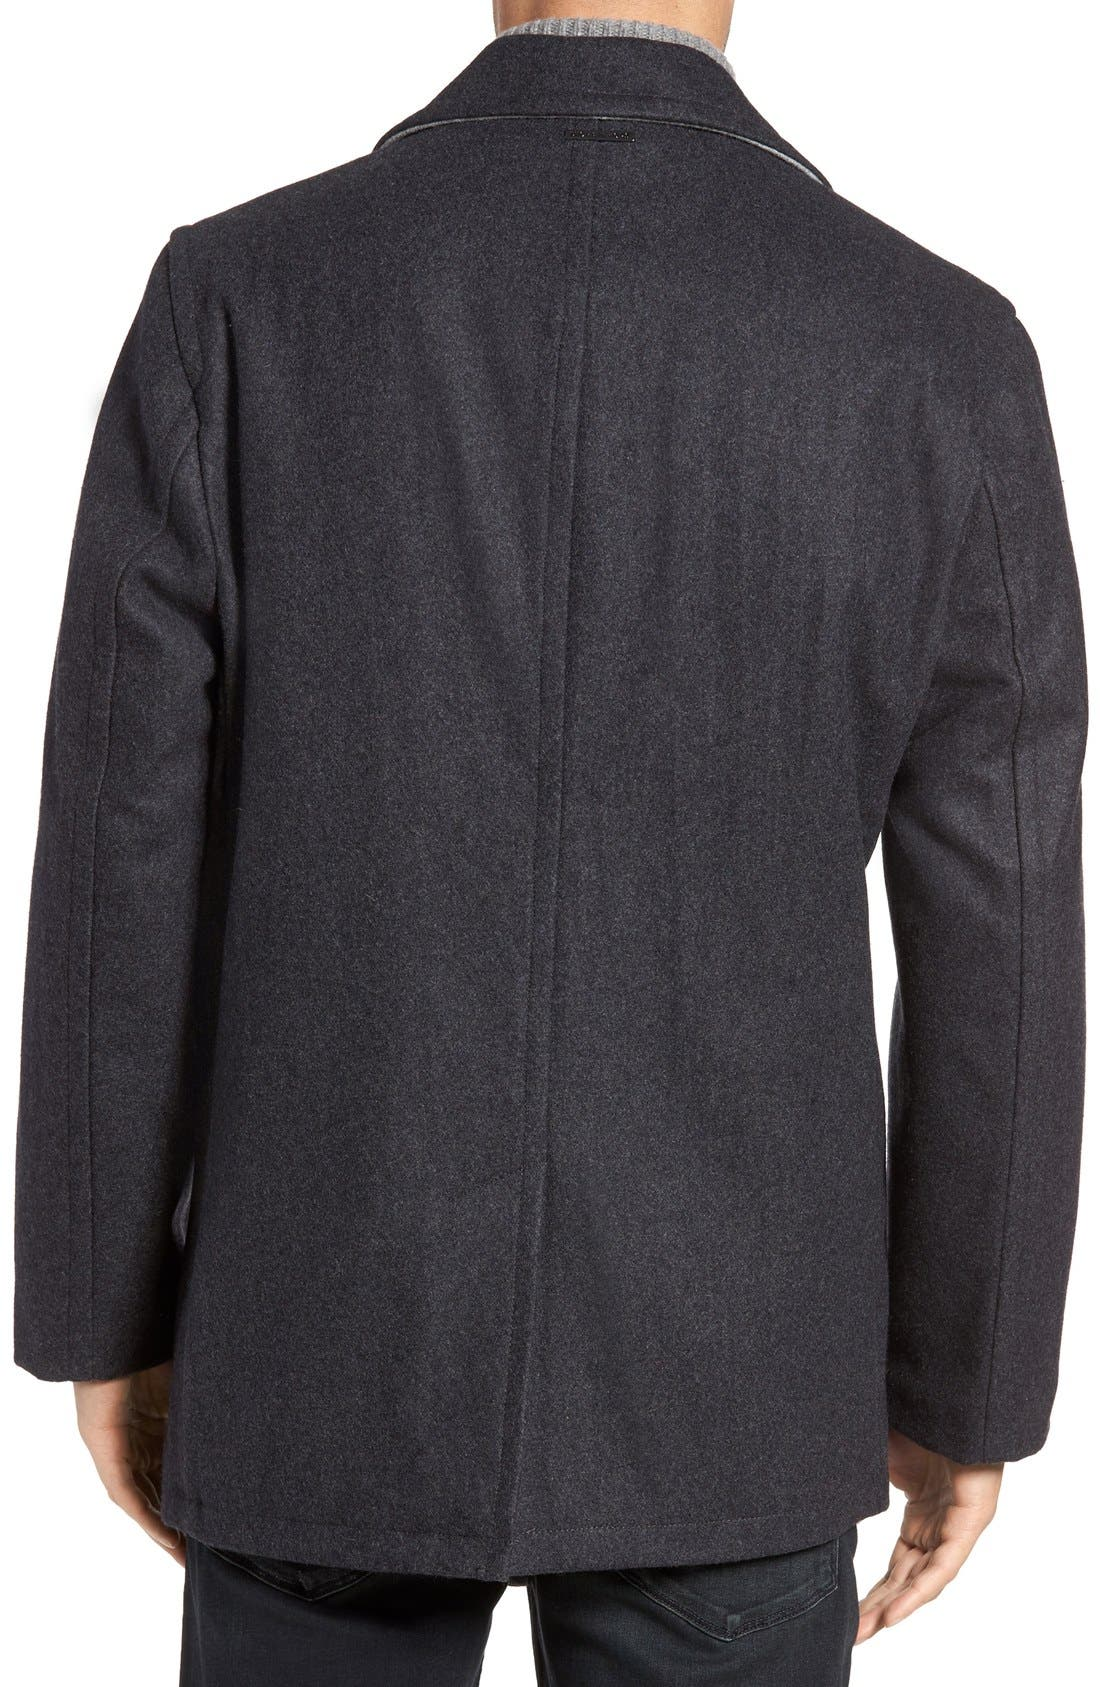 Wool Blend Double Breasted Peacoat,                             Alternate thumbnail 40, color,